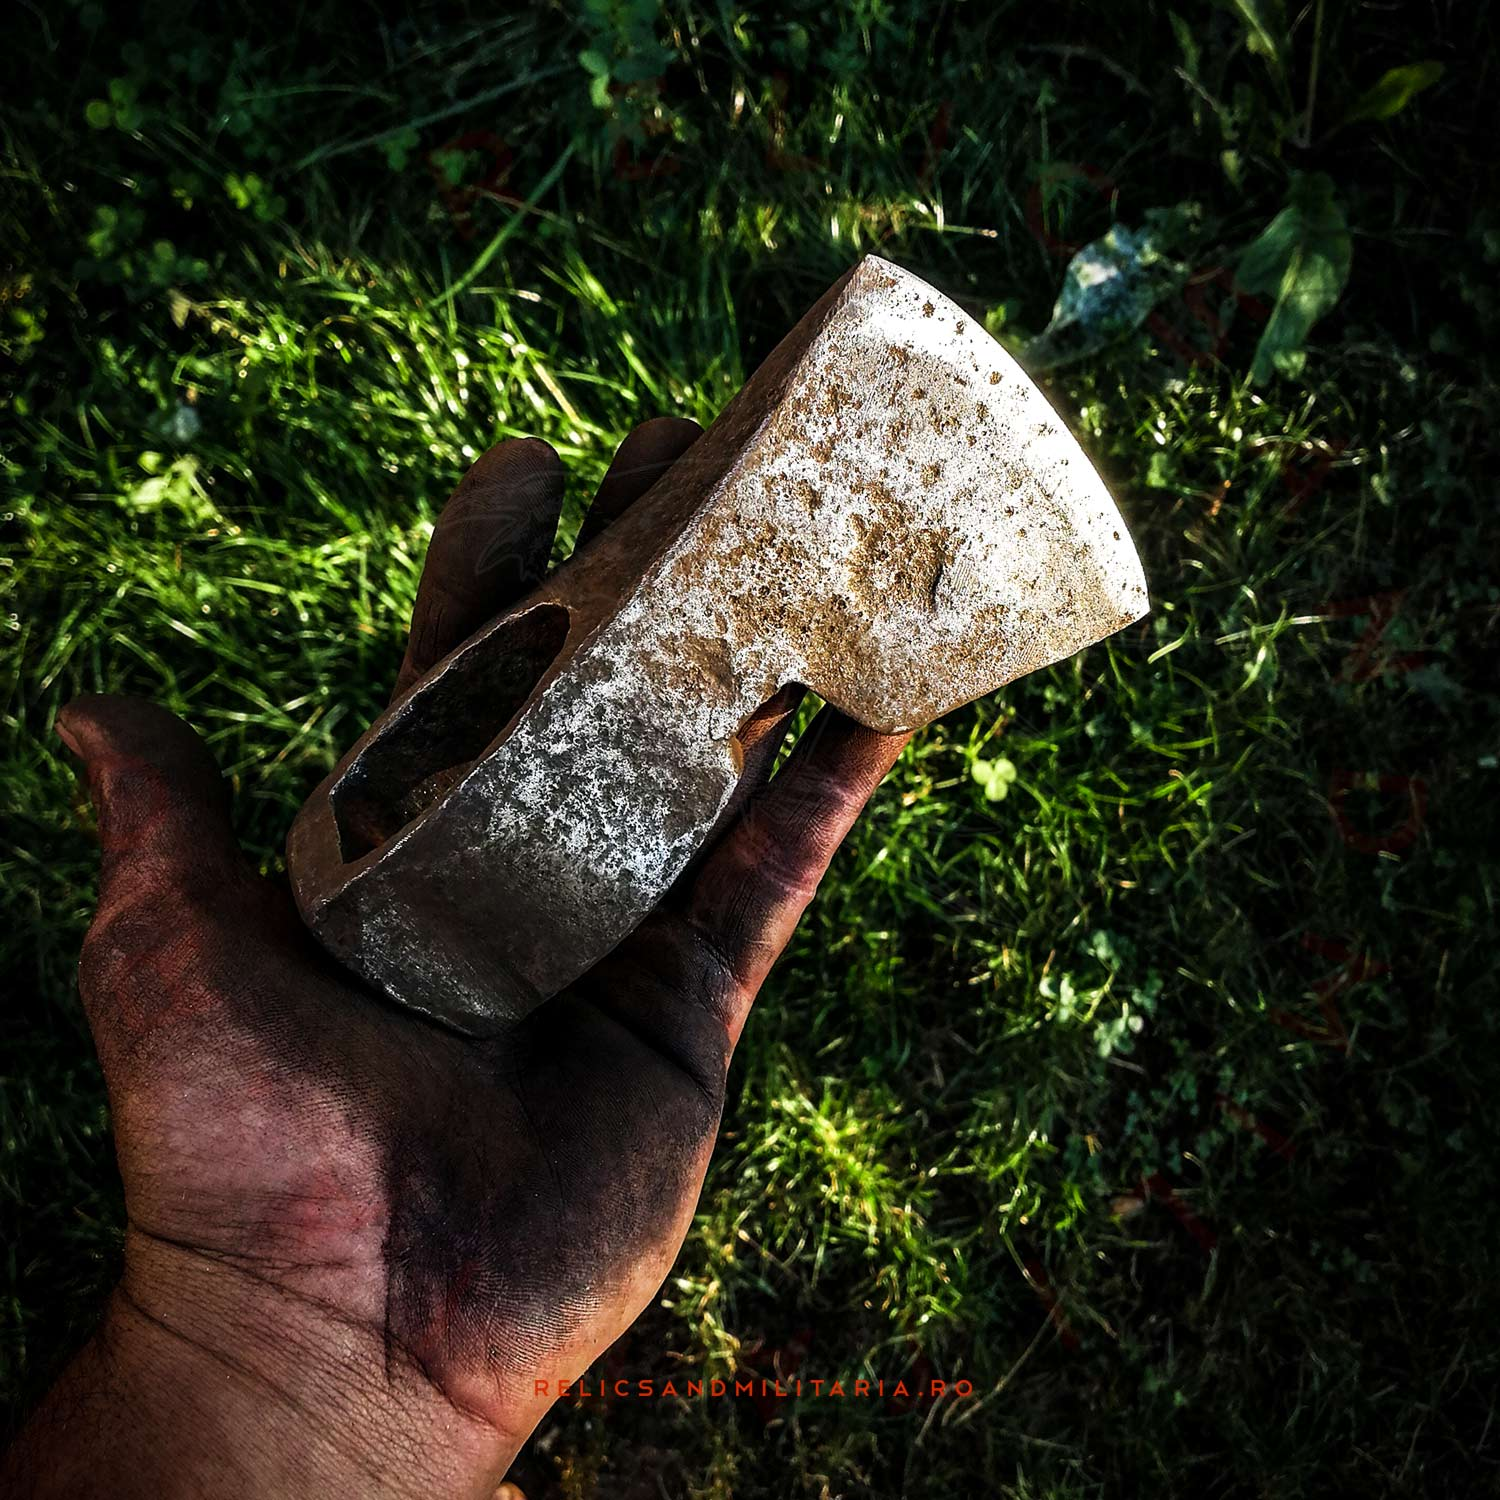 Restoring an old axe head found in the forest while metal detecting